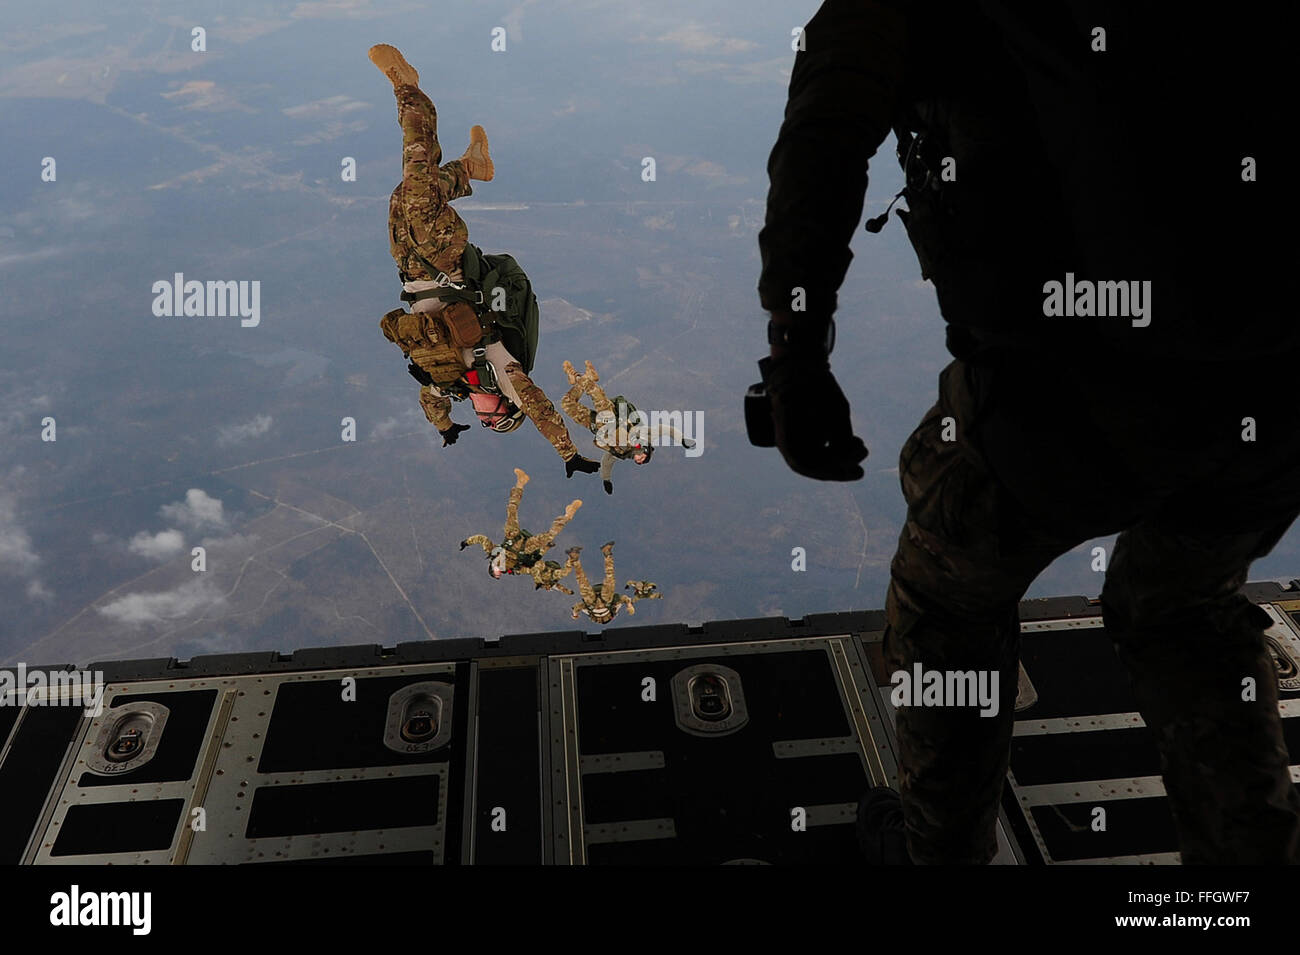 U.S. Air Force combat controllers with the 21st Special Tactics Squadron perform a high altitude low opening jump - Stock Image